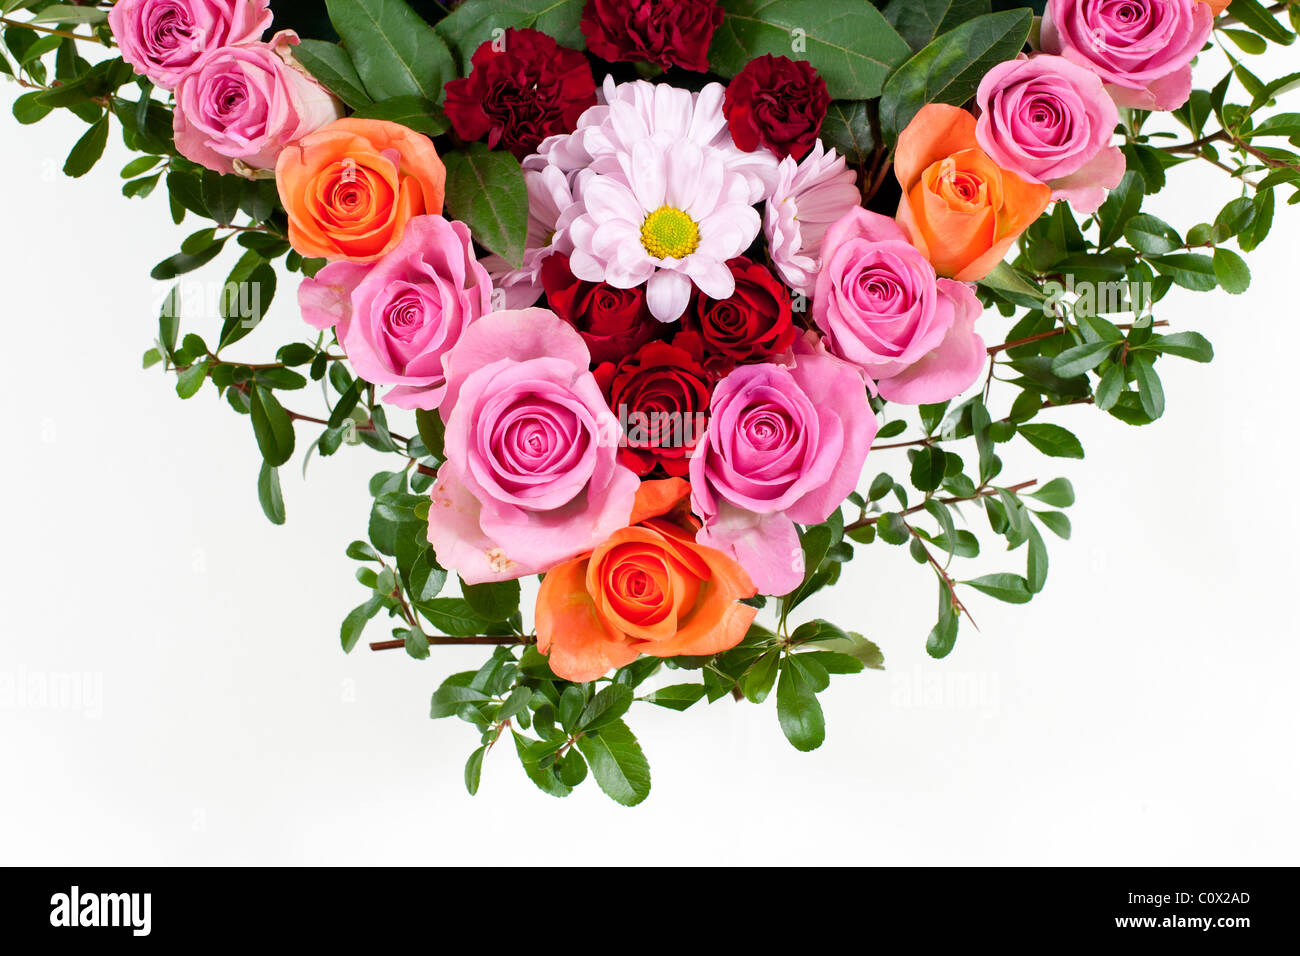 Heart shaped funeral flowers stock photo 34993349 alamy heart shaped funeral flowers izmirmasajfo